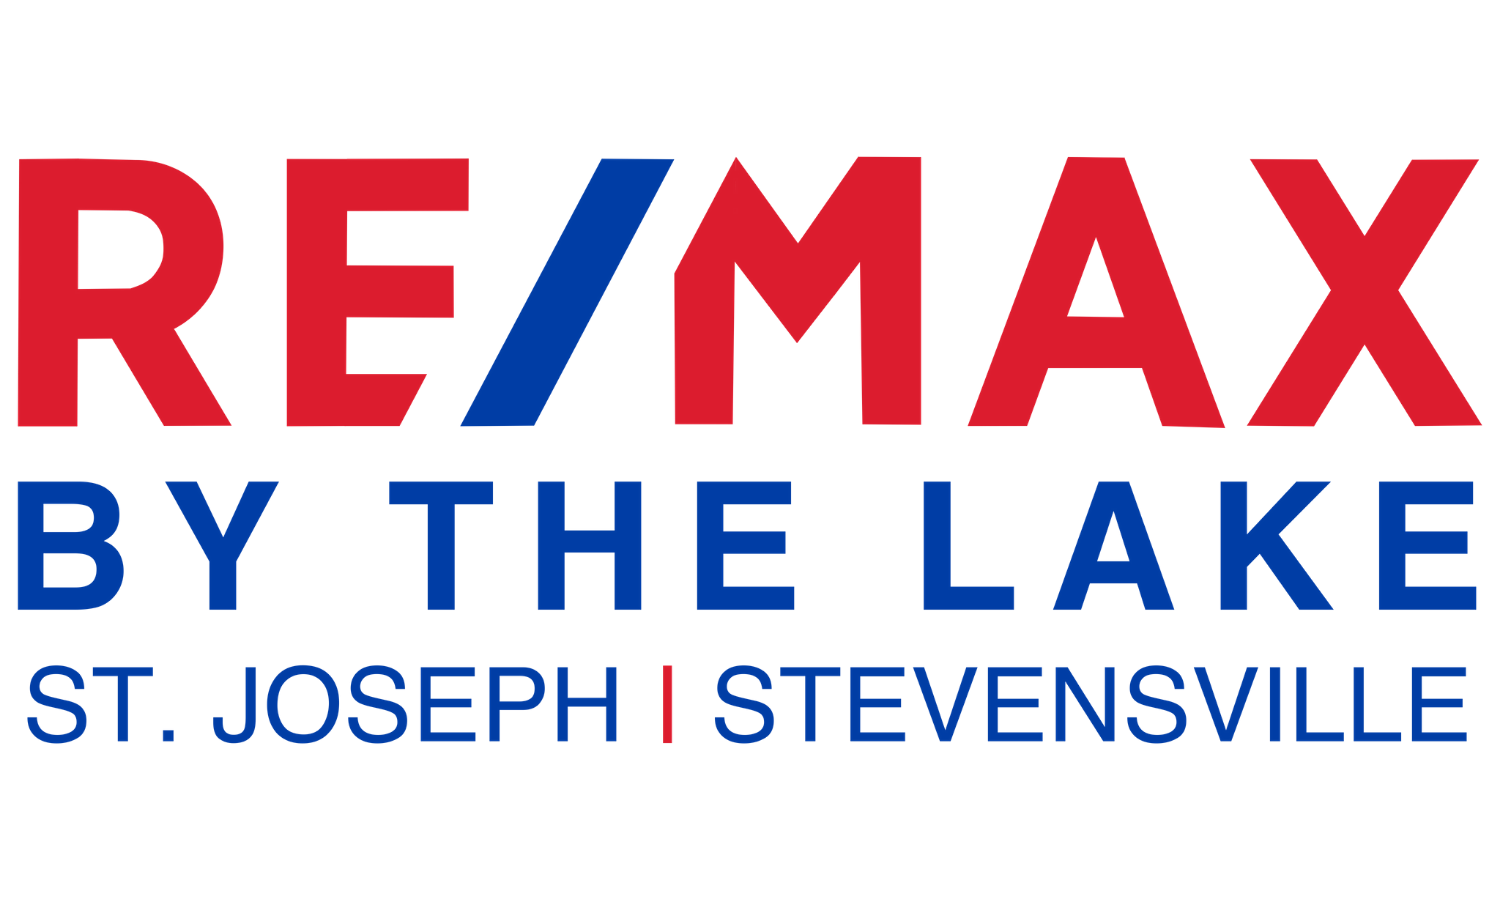 RE/MAX by the Lake - St. Joseph & Stevensville